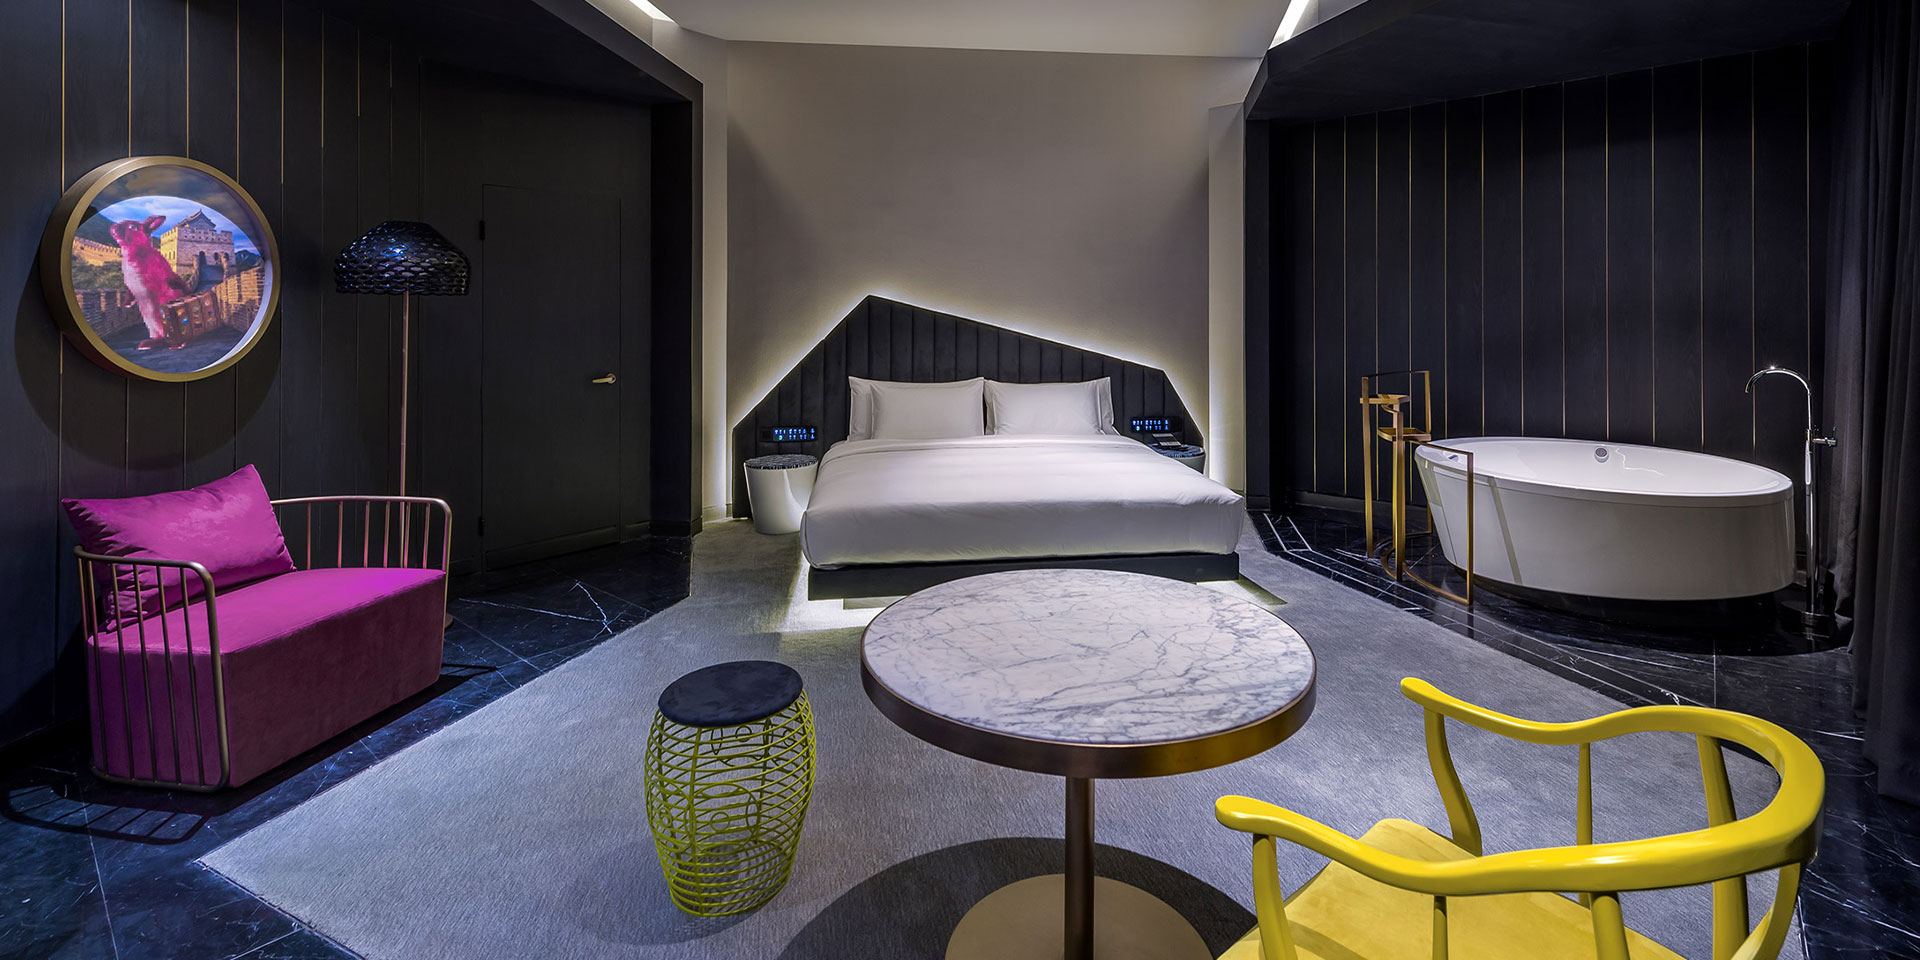 VueHotelHouhaiBeijing-Beijing-China-Asia-rooms.jpg